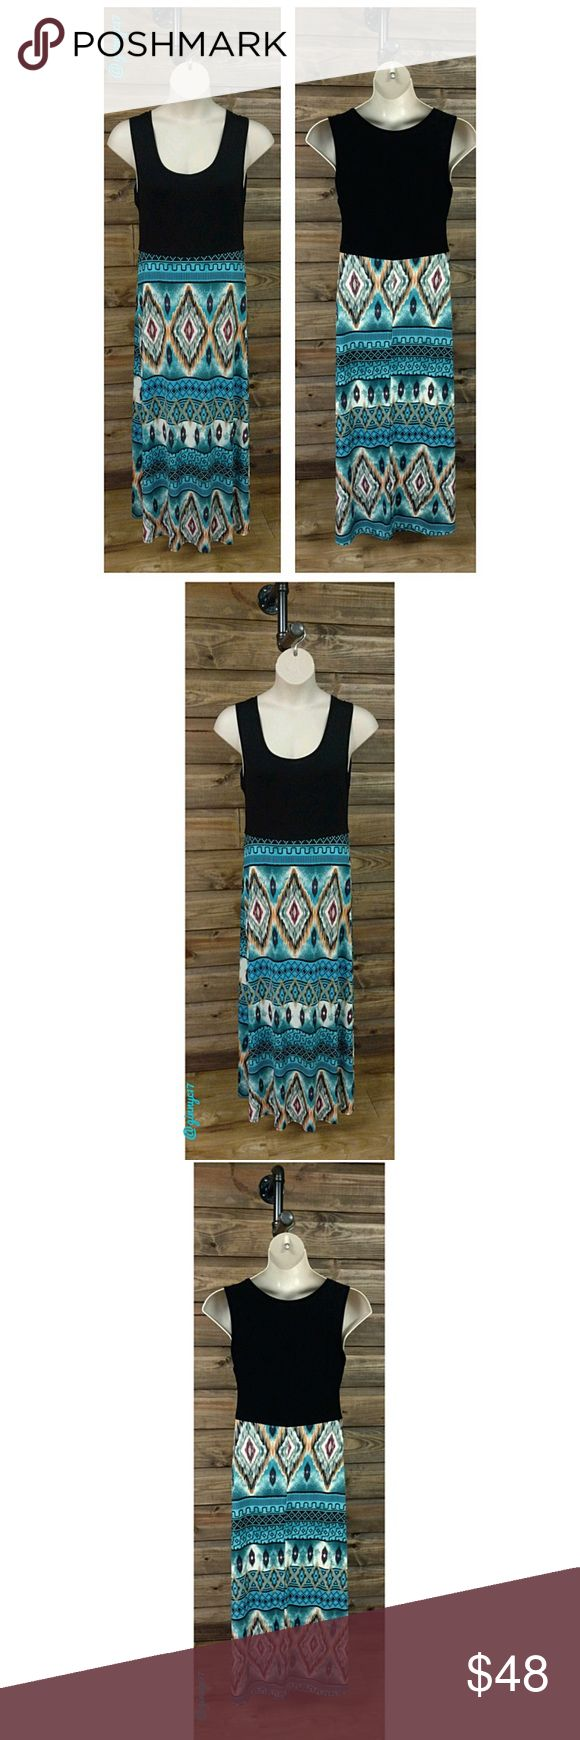 "🚫FINAL PRICE🚫Boho Tribal Plus Size Maxi Dress Boho Chic!  Tribal Print  Plus Size Maxi Dress in Black/Coral/Turquoise/Magenta Multi. Material 92% Polyester 8% Spandex. Length of dress from waistline down 40"". 1X Shown on Standard 1X Plus Form Bust. FOR ADDITIONAL MEASUREMENTS *See Attached Size Chart* TRUE TO SIZE Boutique Dresses Maxi"